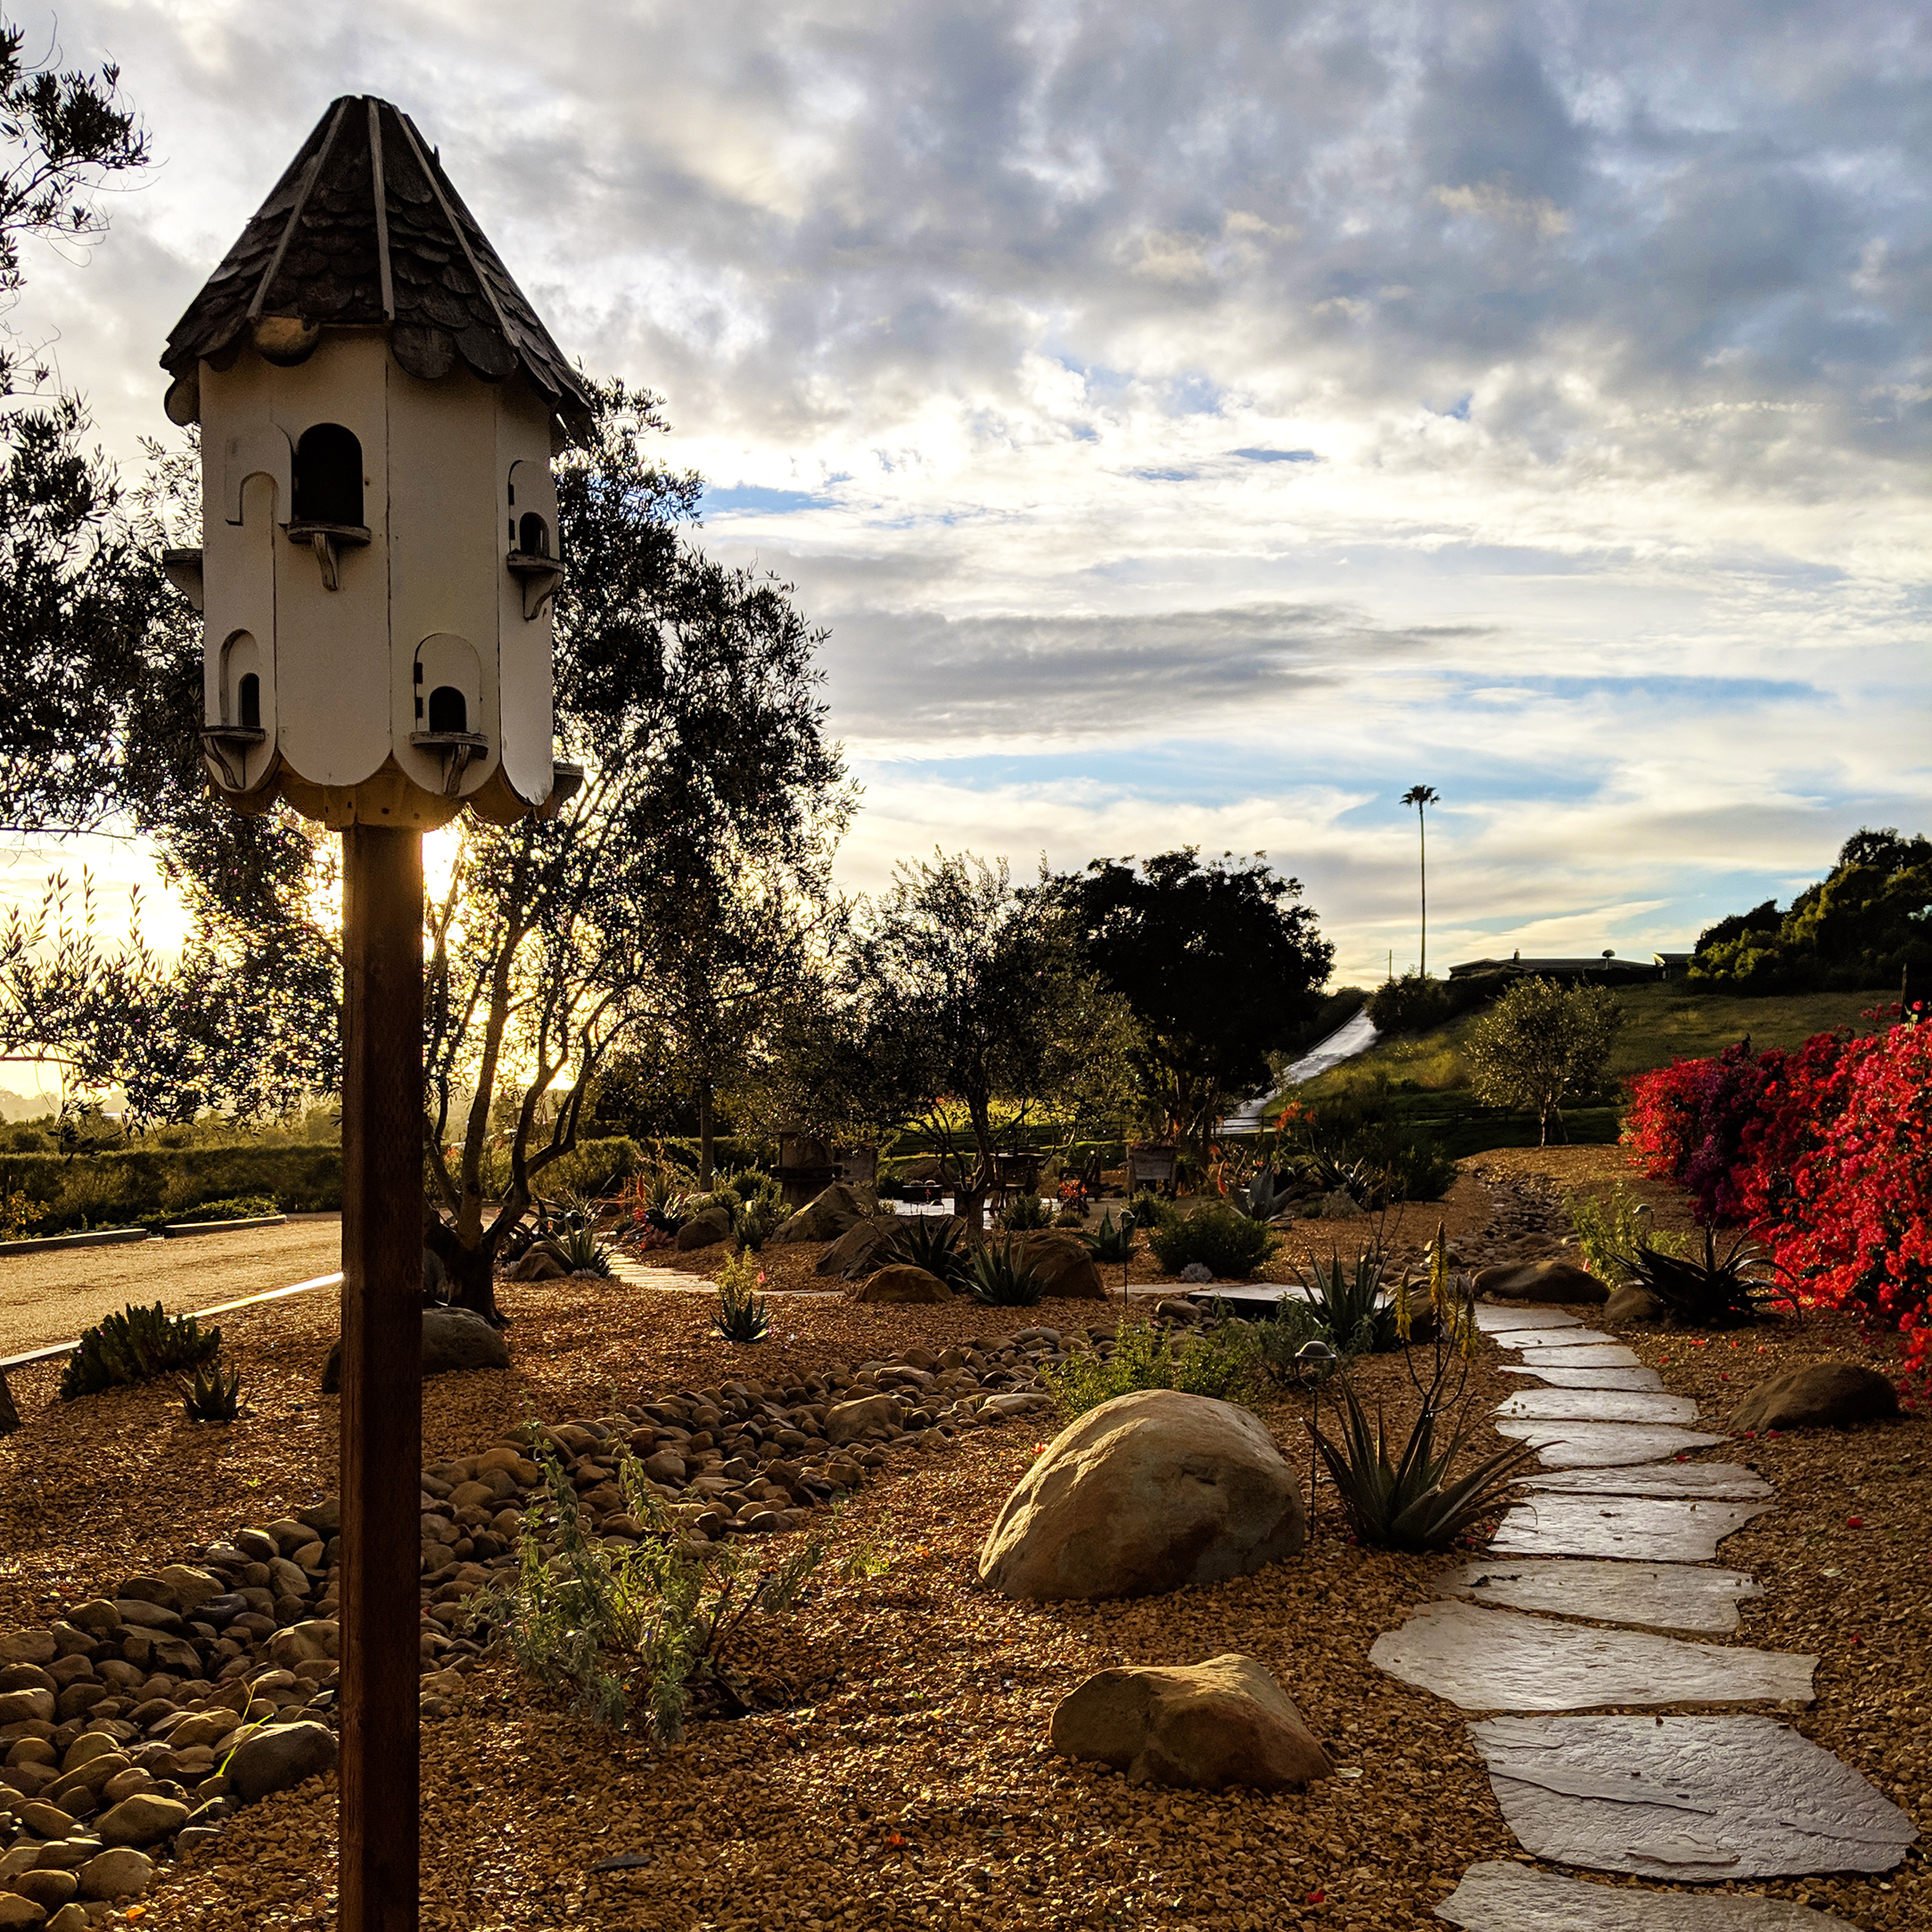 drought tolerant landscape with birdhouse and flagstone